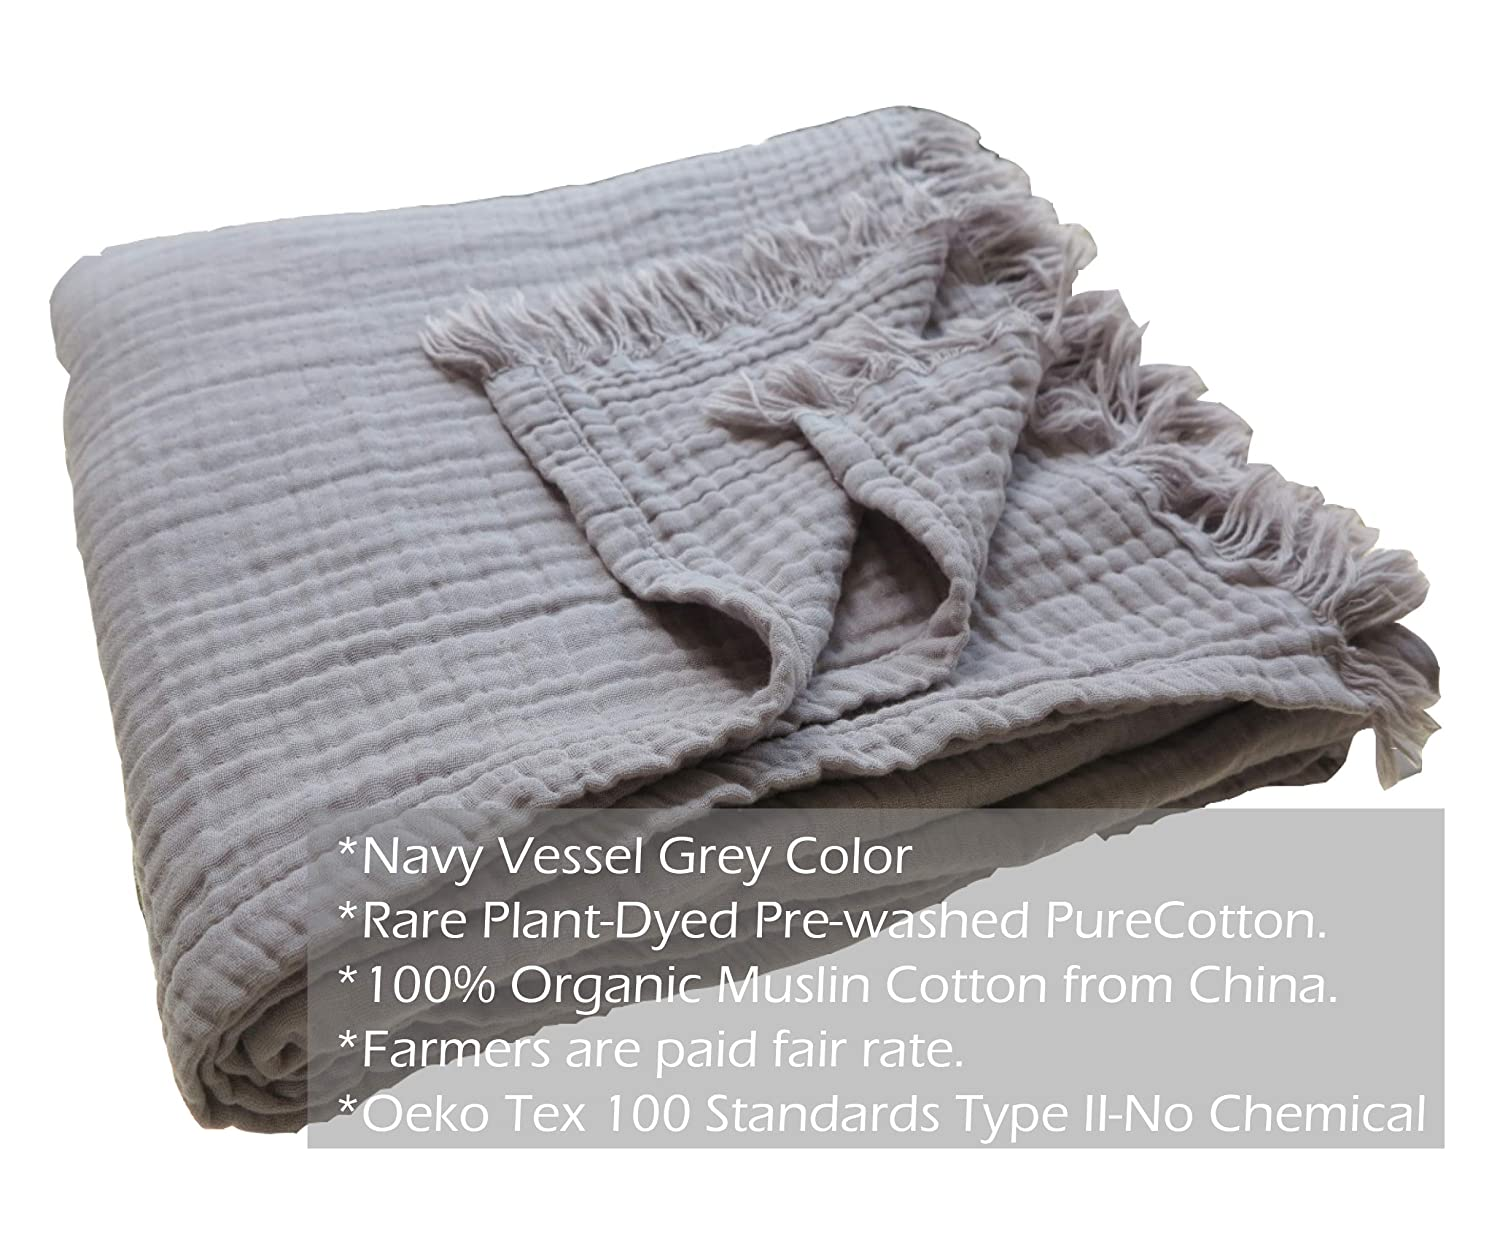 "Pre-Washed 100% Organic Muslin Cotton Throw Blanket for Adult Kids Sofa Couch, Plant Dyed Yarn, Breathable Super Soft Cotton, Cozy, Warm, Lightweight Bedding Throw Blanket, All Season (55""x60"" Grey)"